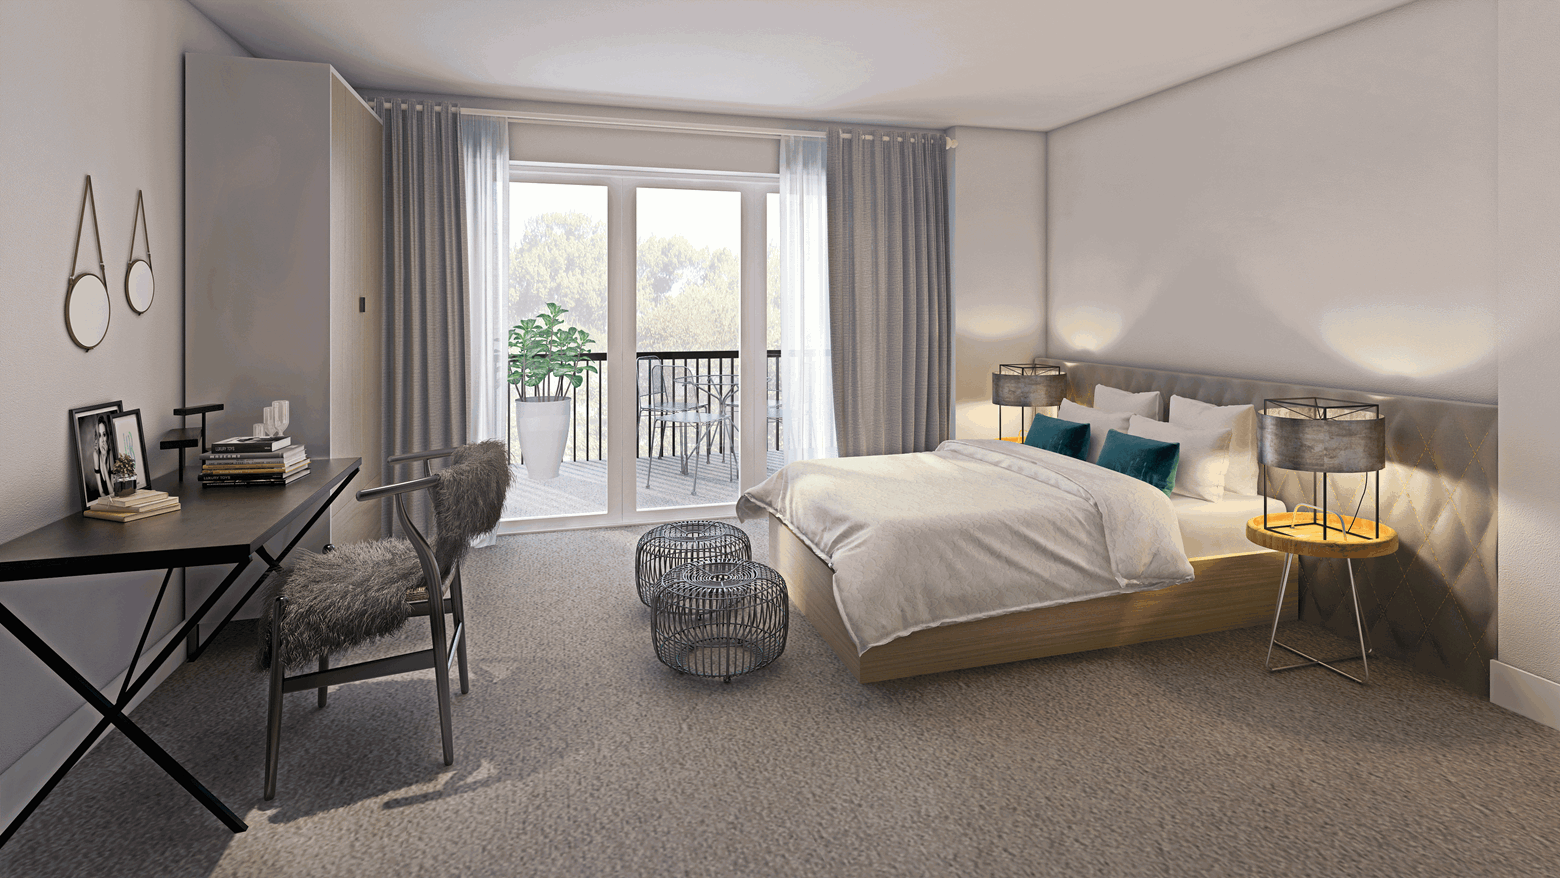 Mettle&Poise Shared Ownership show home - bedroom